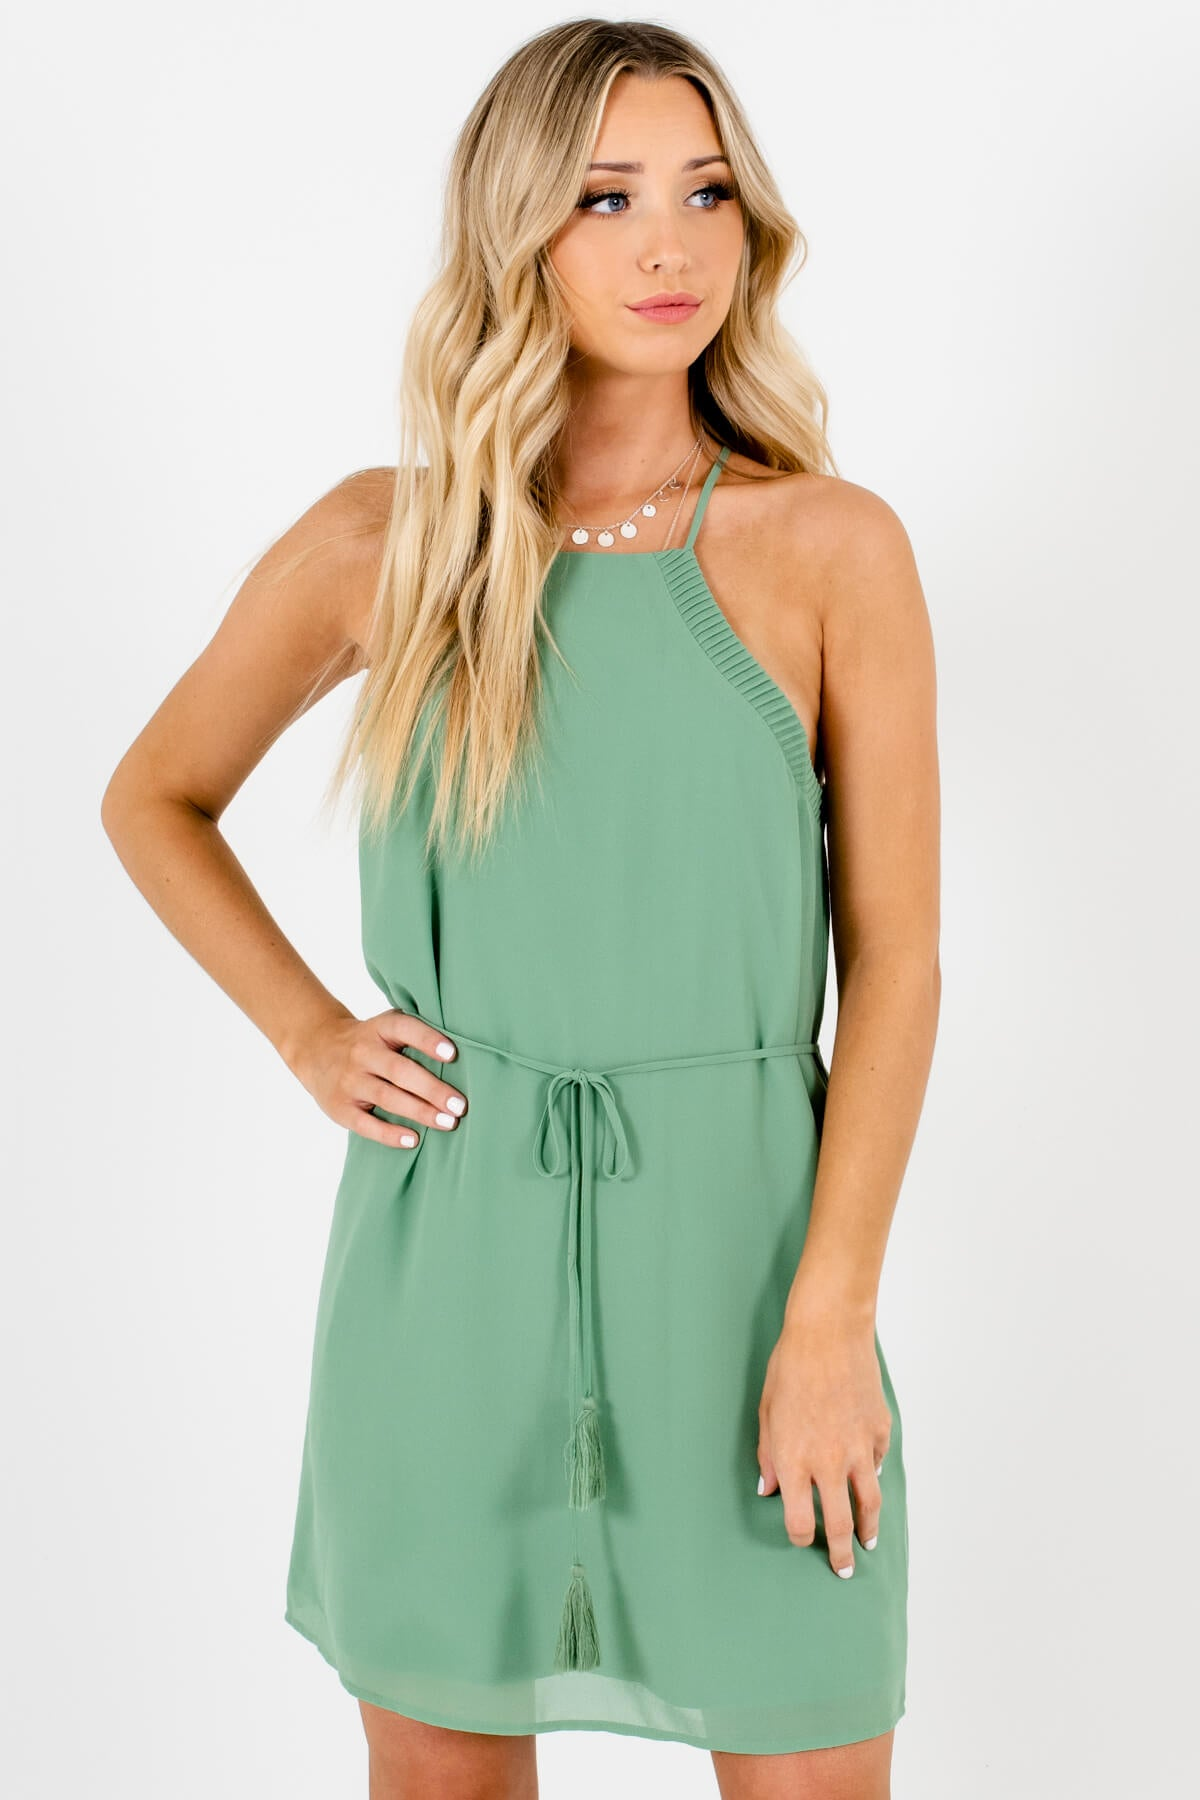 Green Pleated Tassel Tie Mini Dresses Affordable Online Boutique